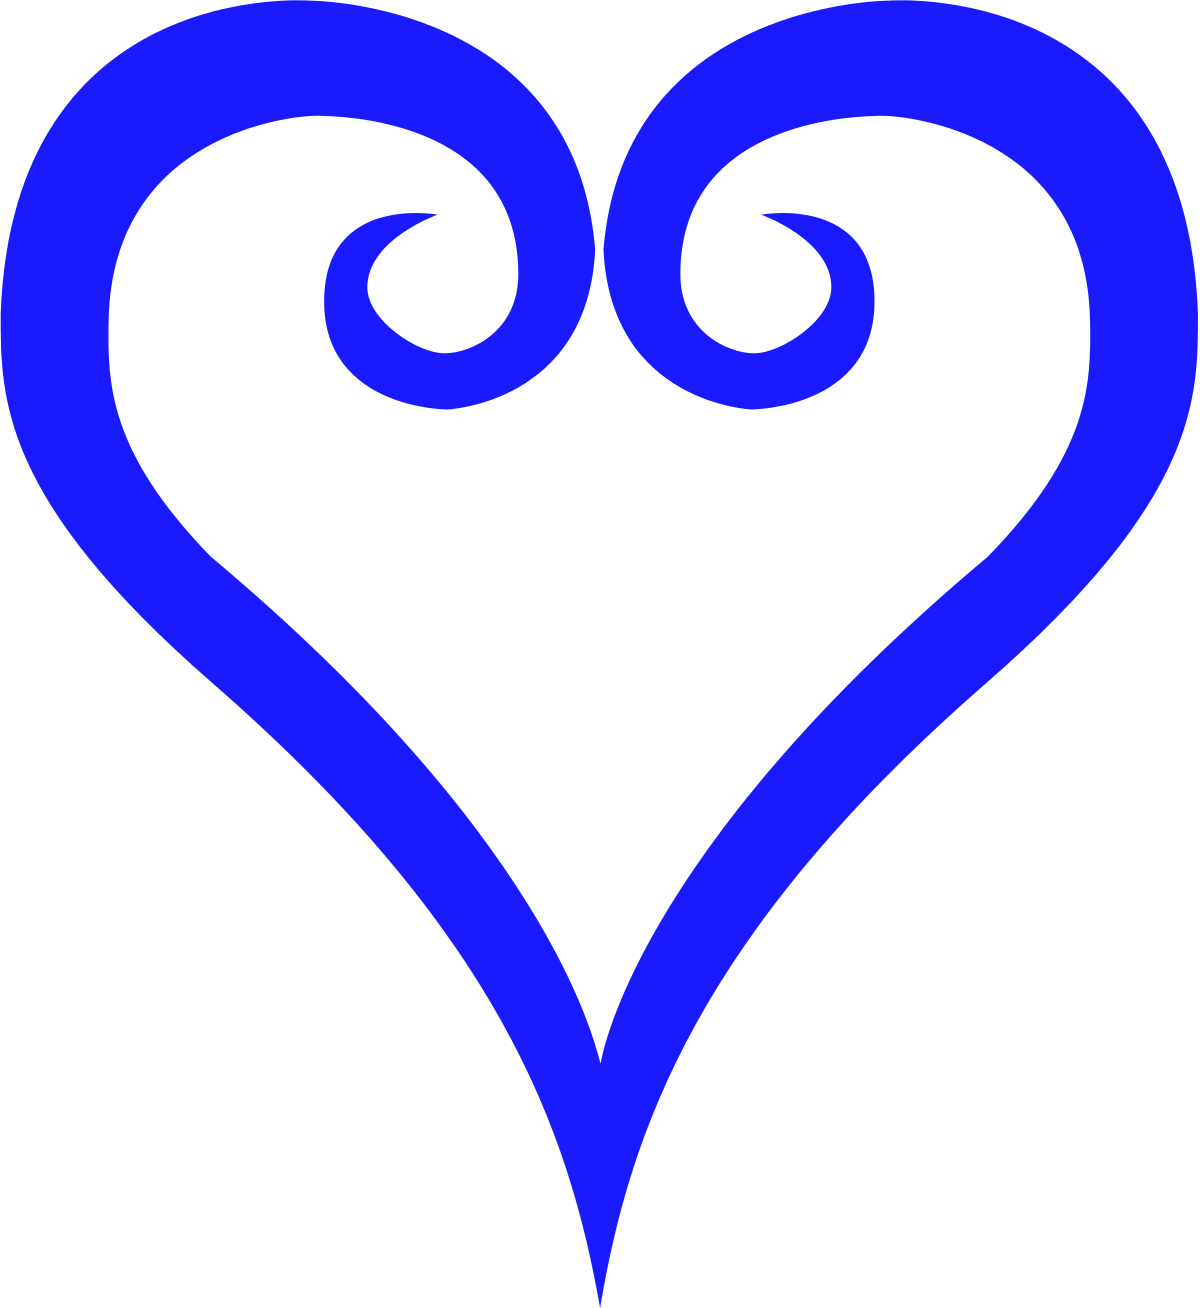 Heat clipart tiny heart. Kingdom hearts wikiquote